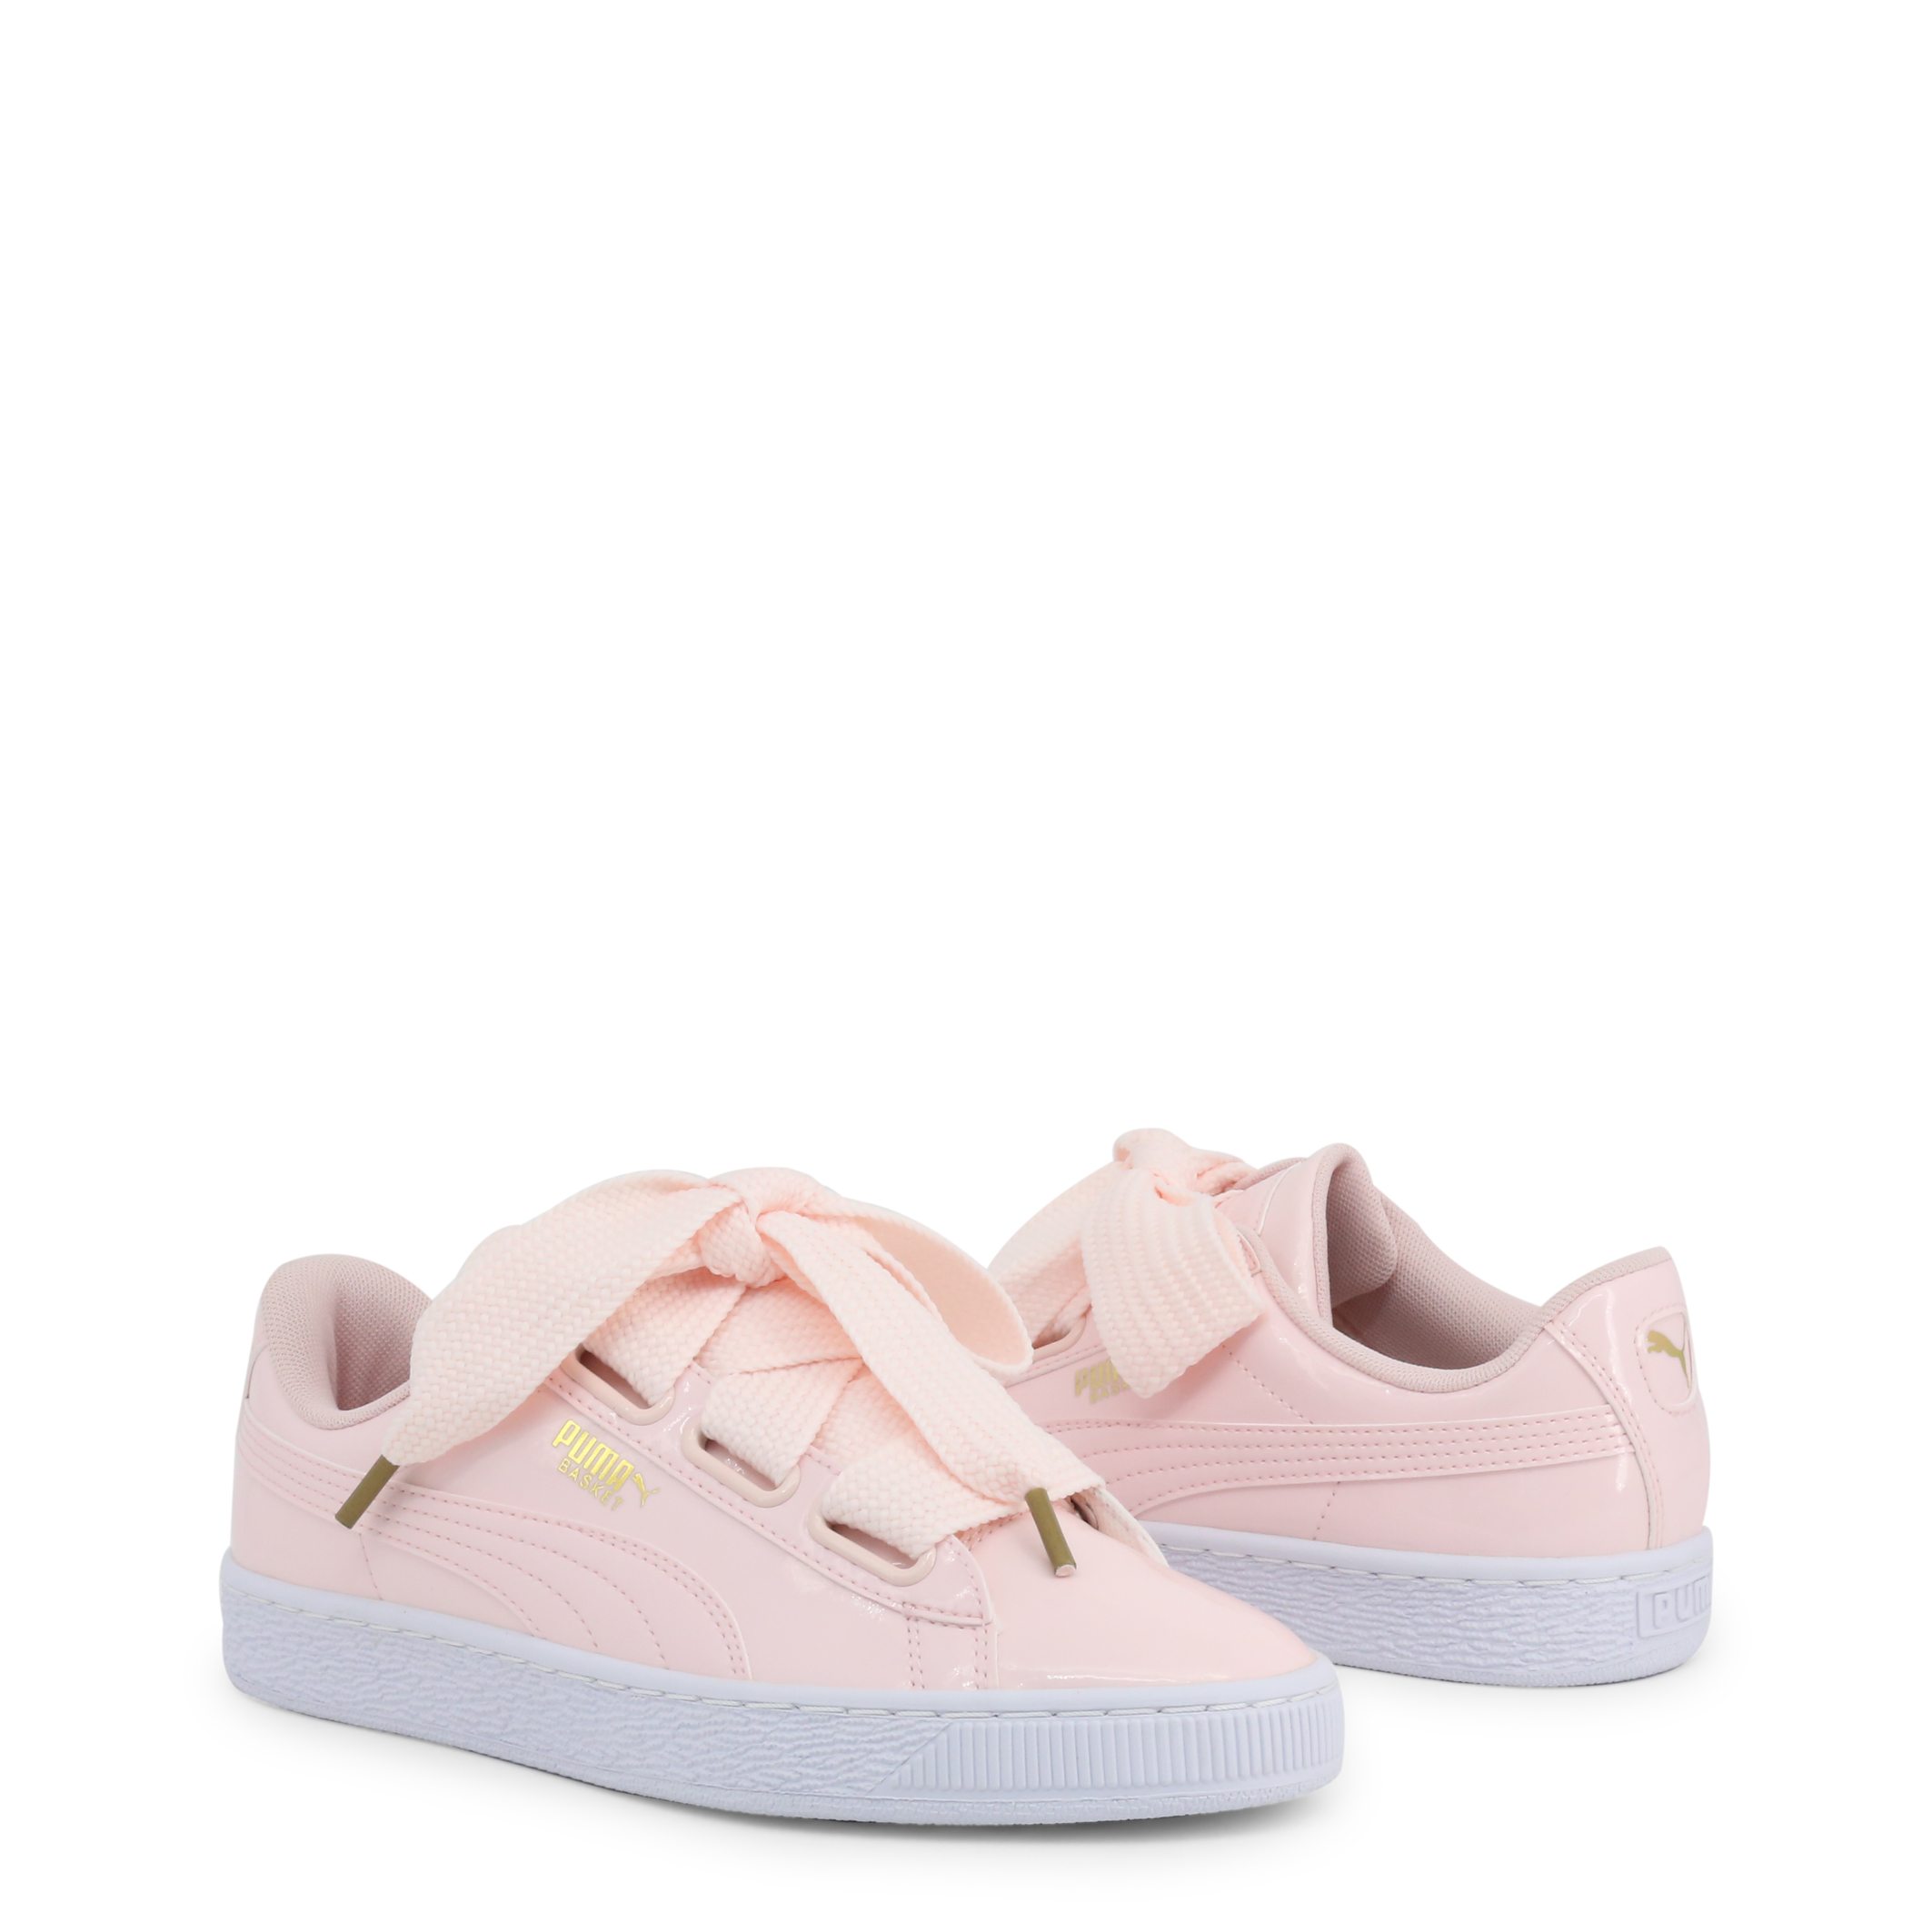 Baskets / Sneakers  Puma 363073-14-BasketHeartPatent pink